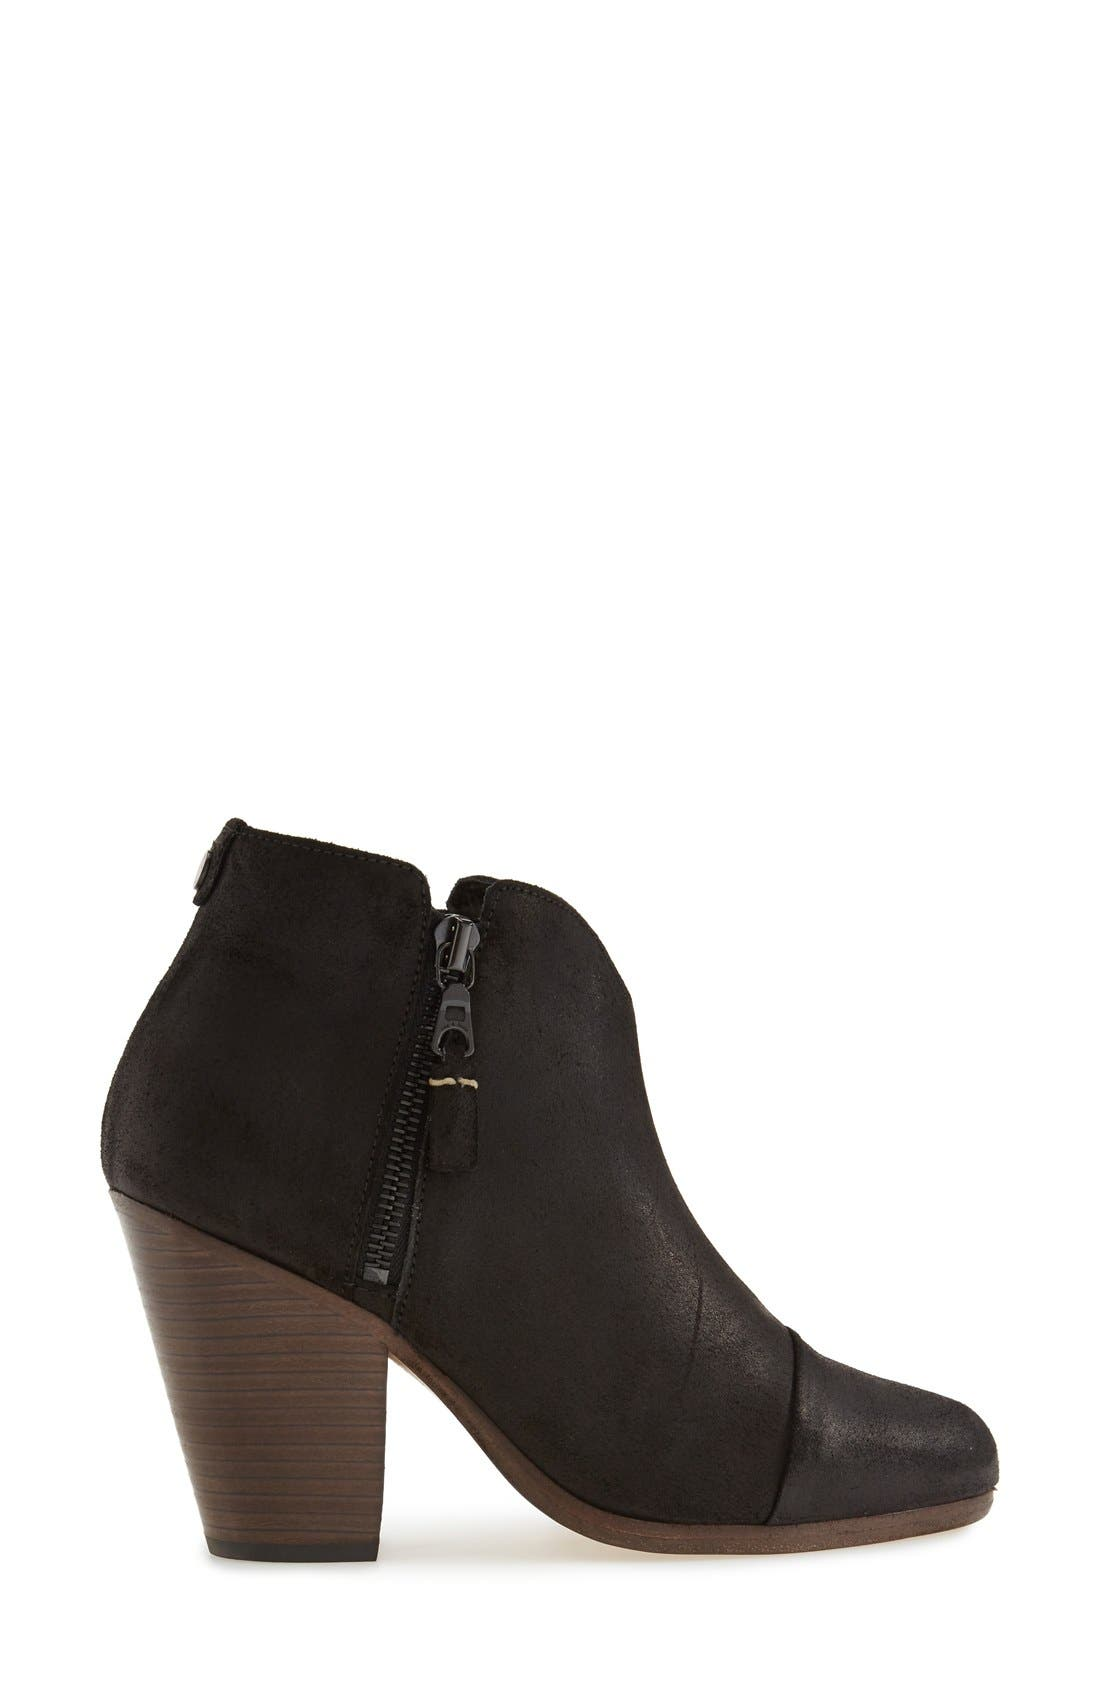 Margot Bootie,                             Alternate thumbnail 8, color,                             BLACK WAXED SUEDE